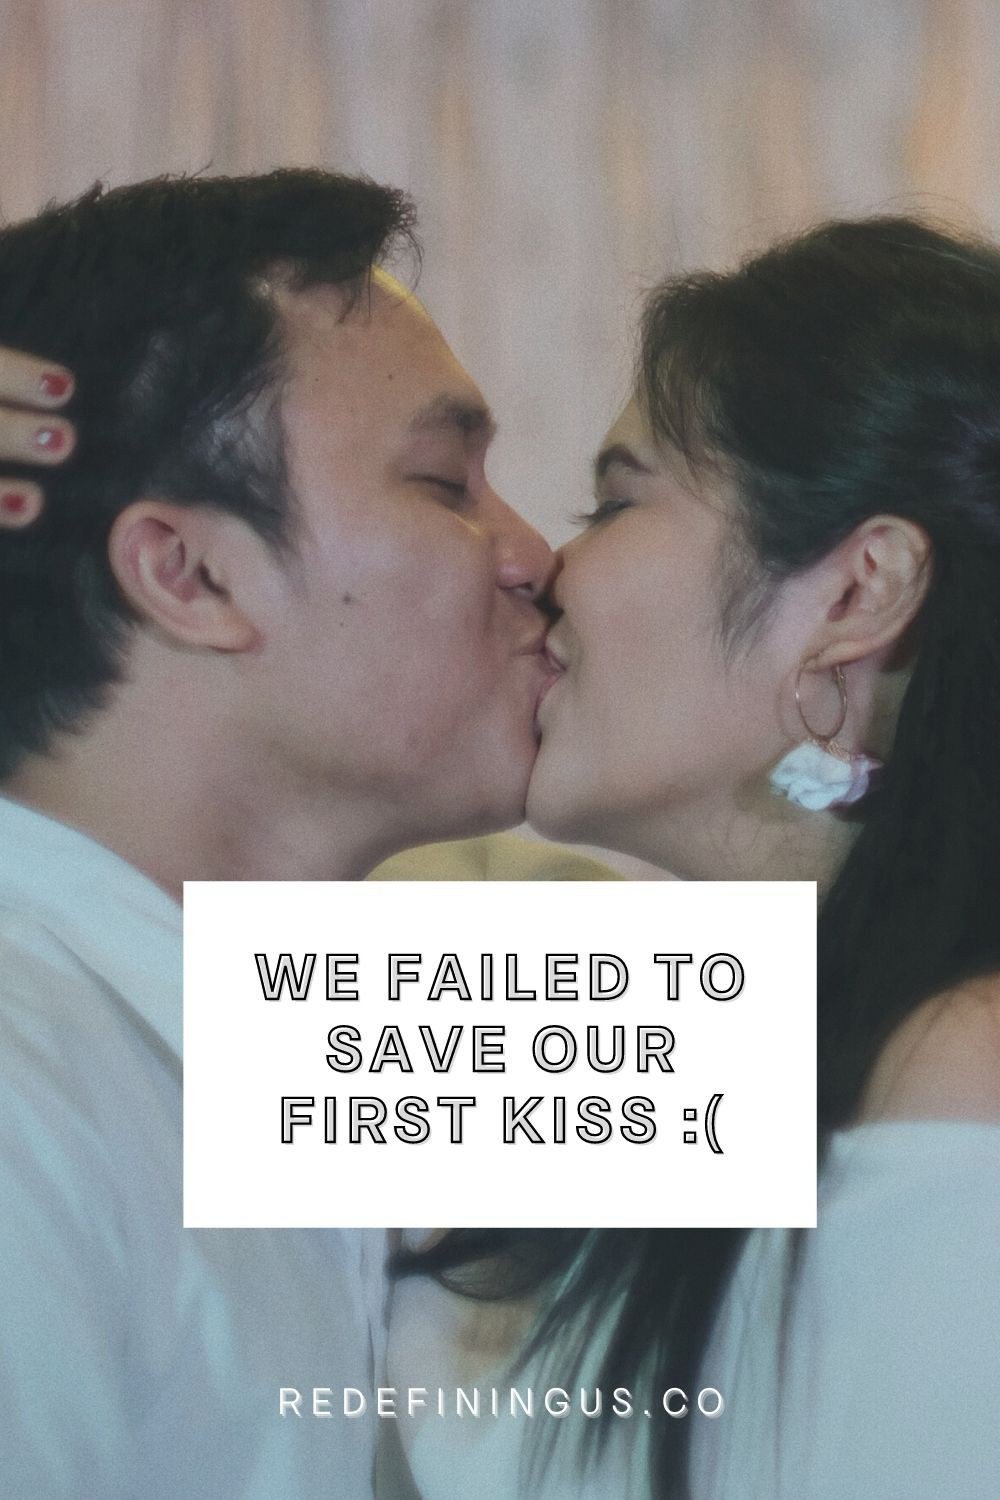 We Failed to Save Our First Kiss for Marriage